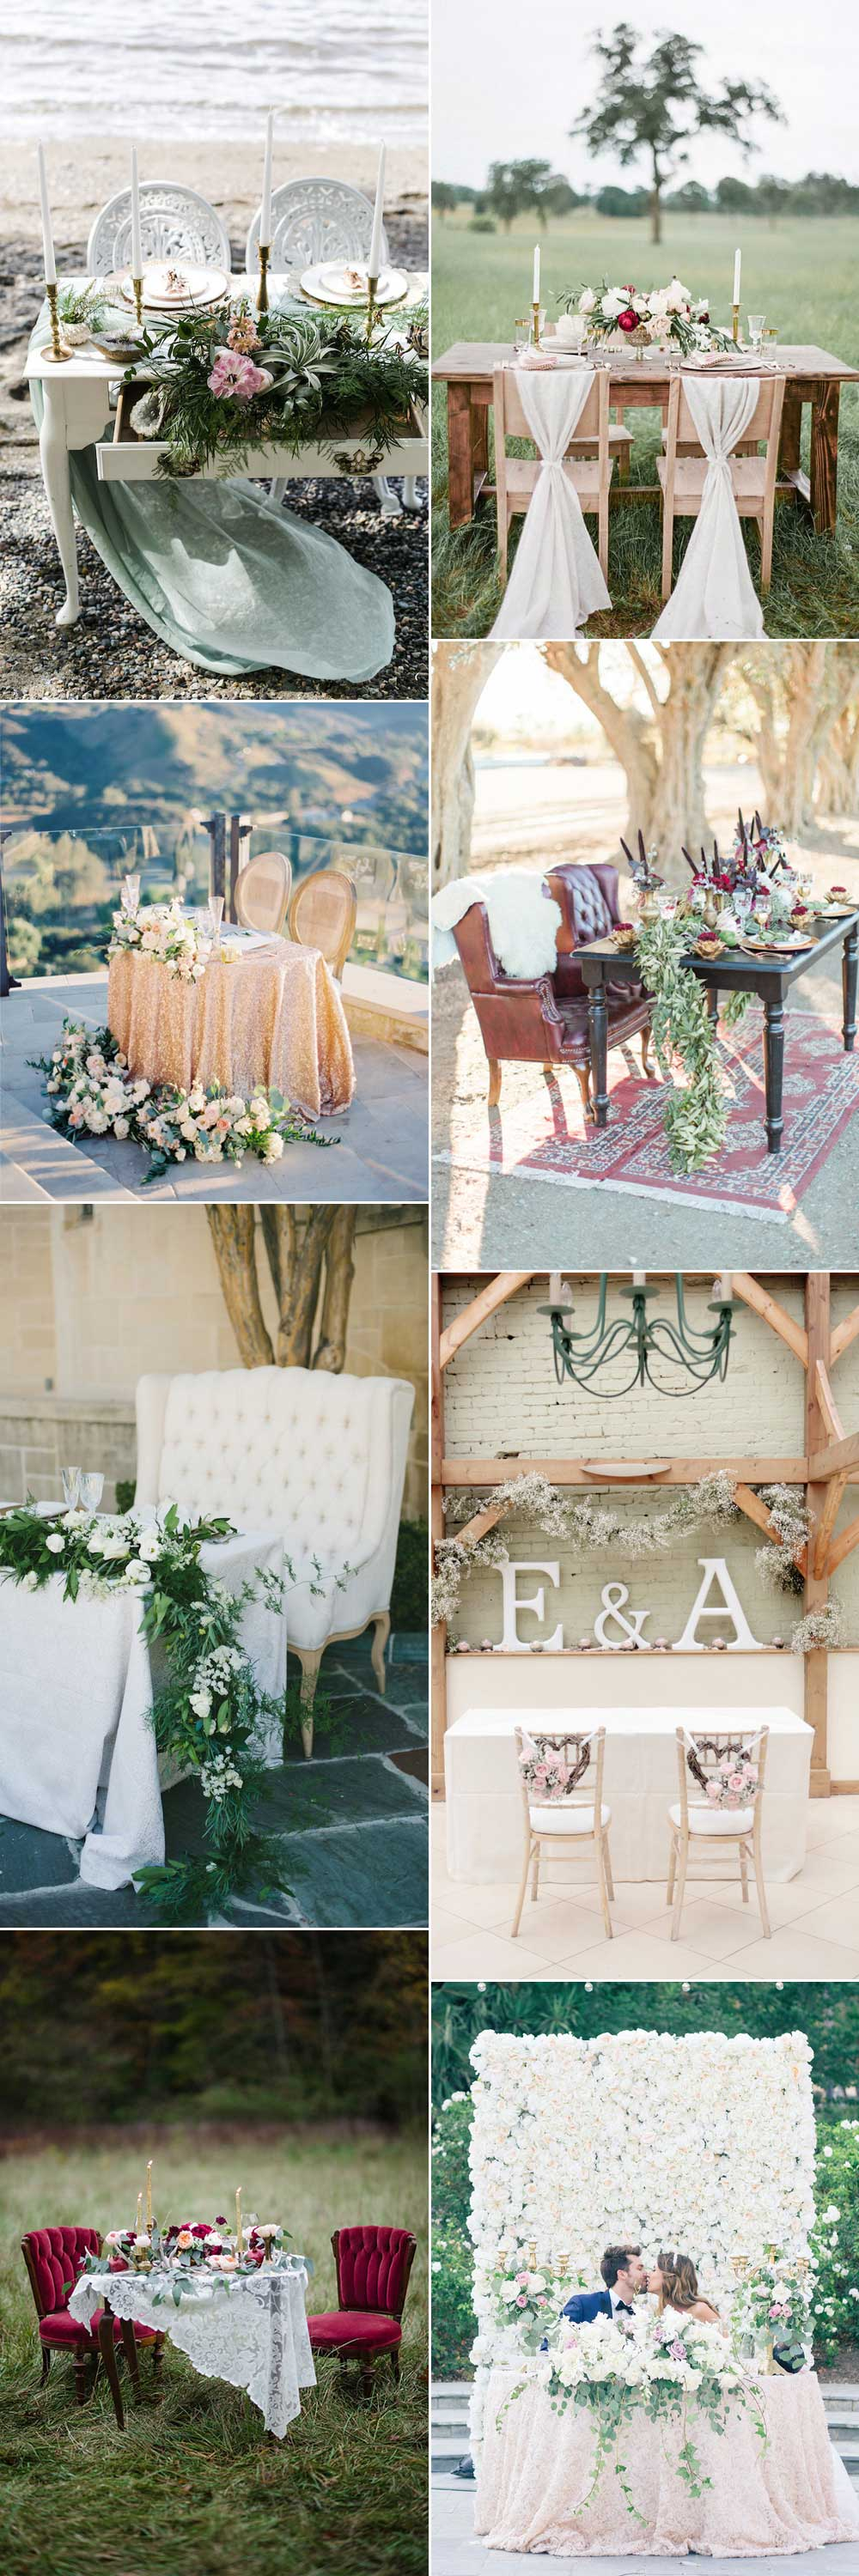 sweetheart table for two ideas